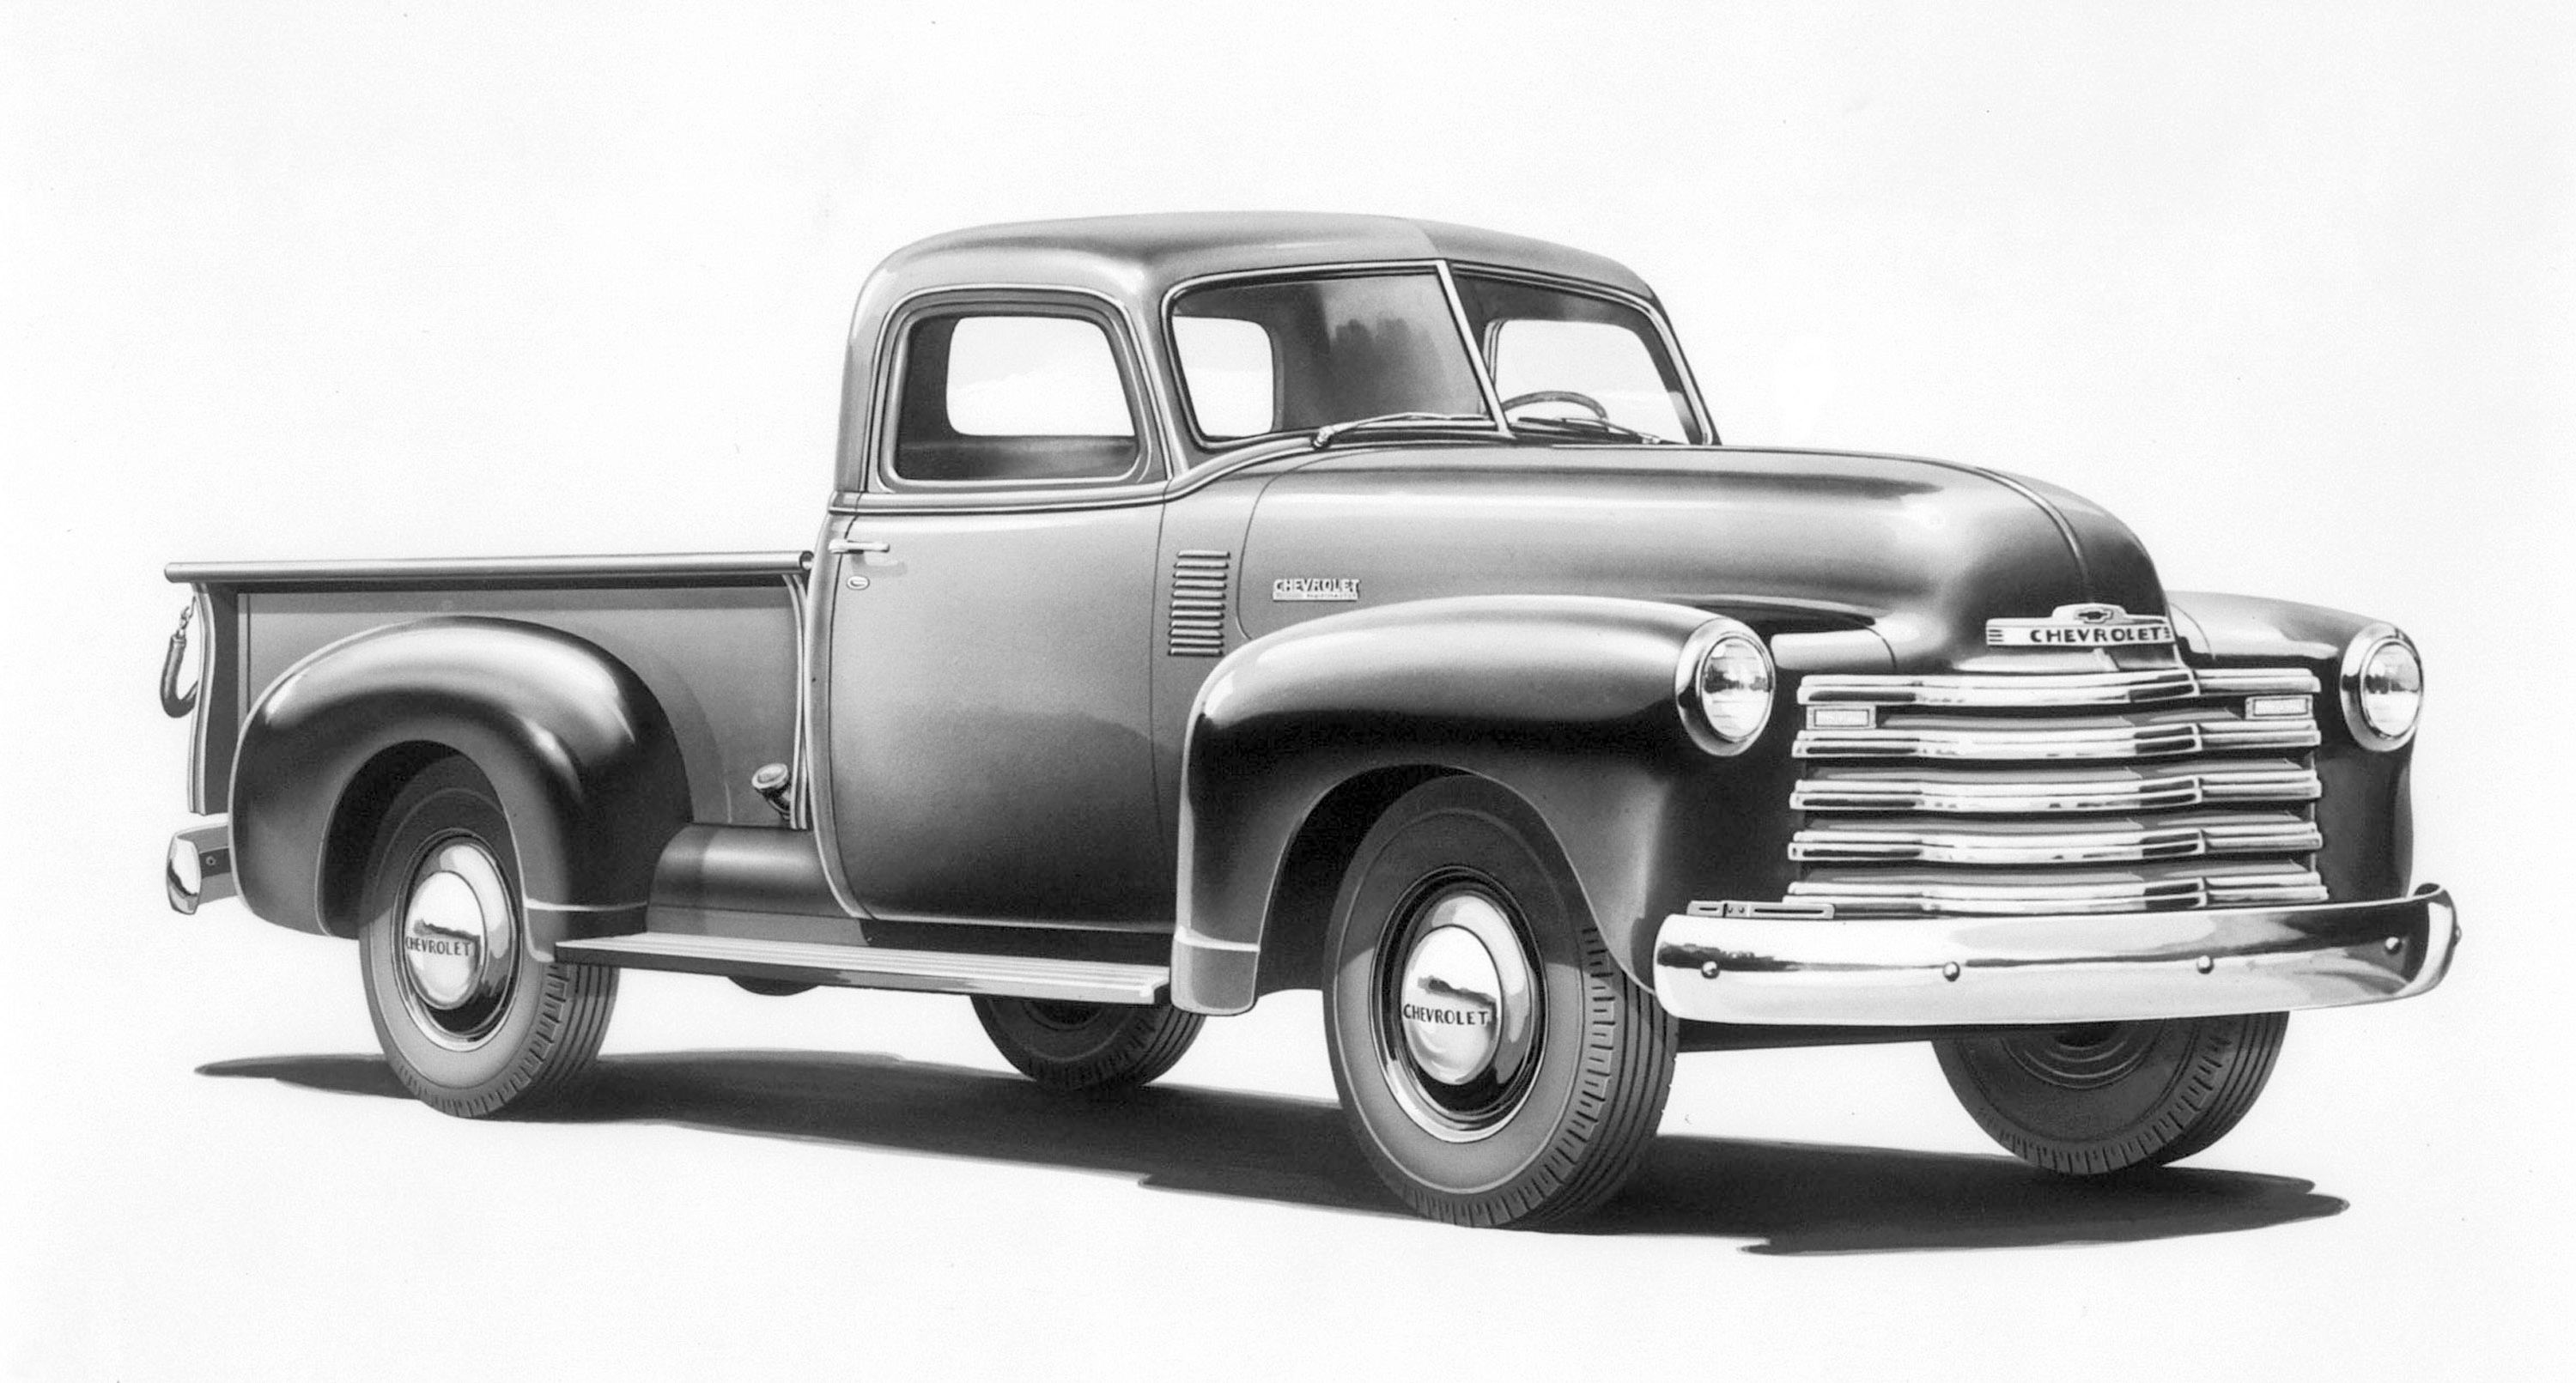 55 Chevy Pickup Wiring Diagram Solutions 1955 Bel Air Dash Get Free Image About Pu 1952 3100 Diagrams Schematics